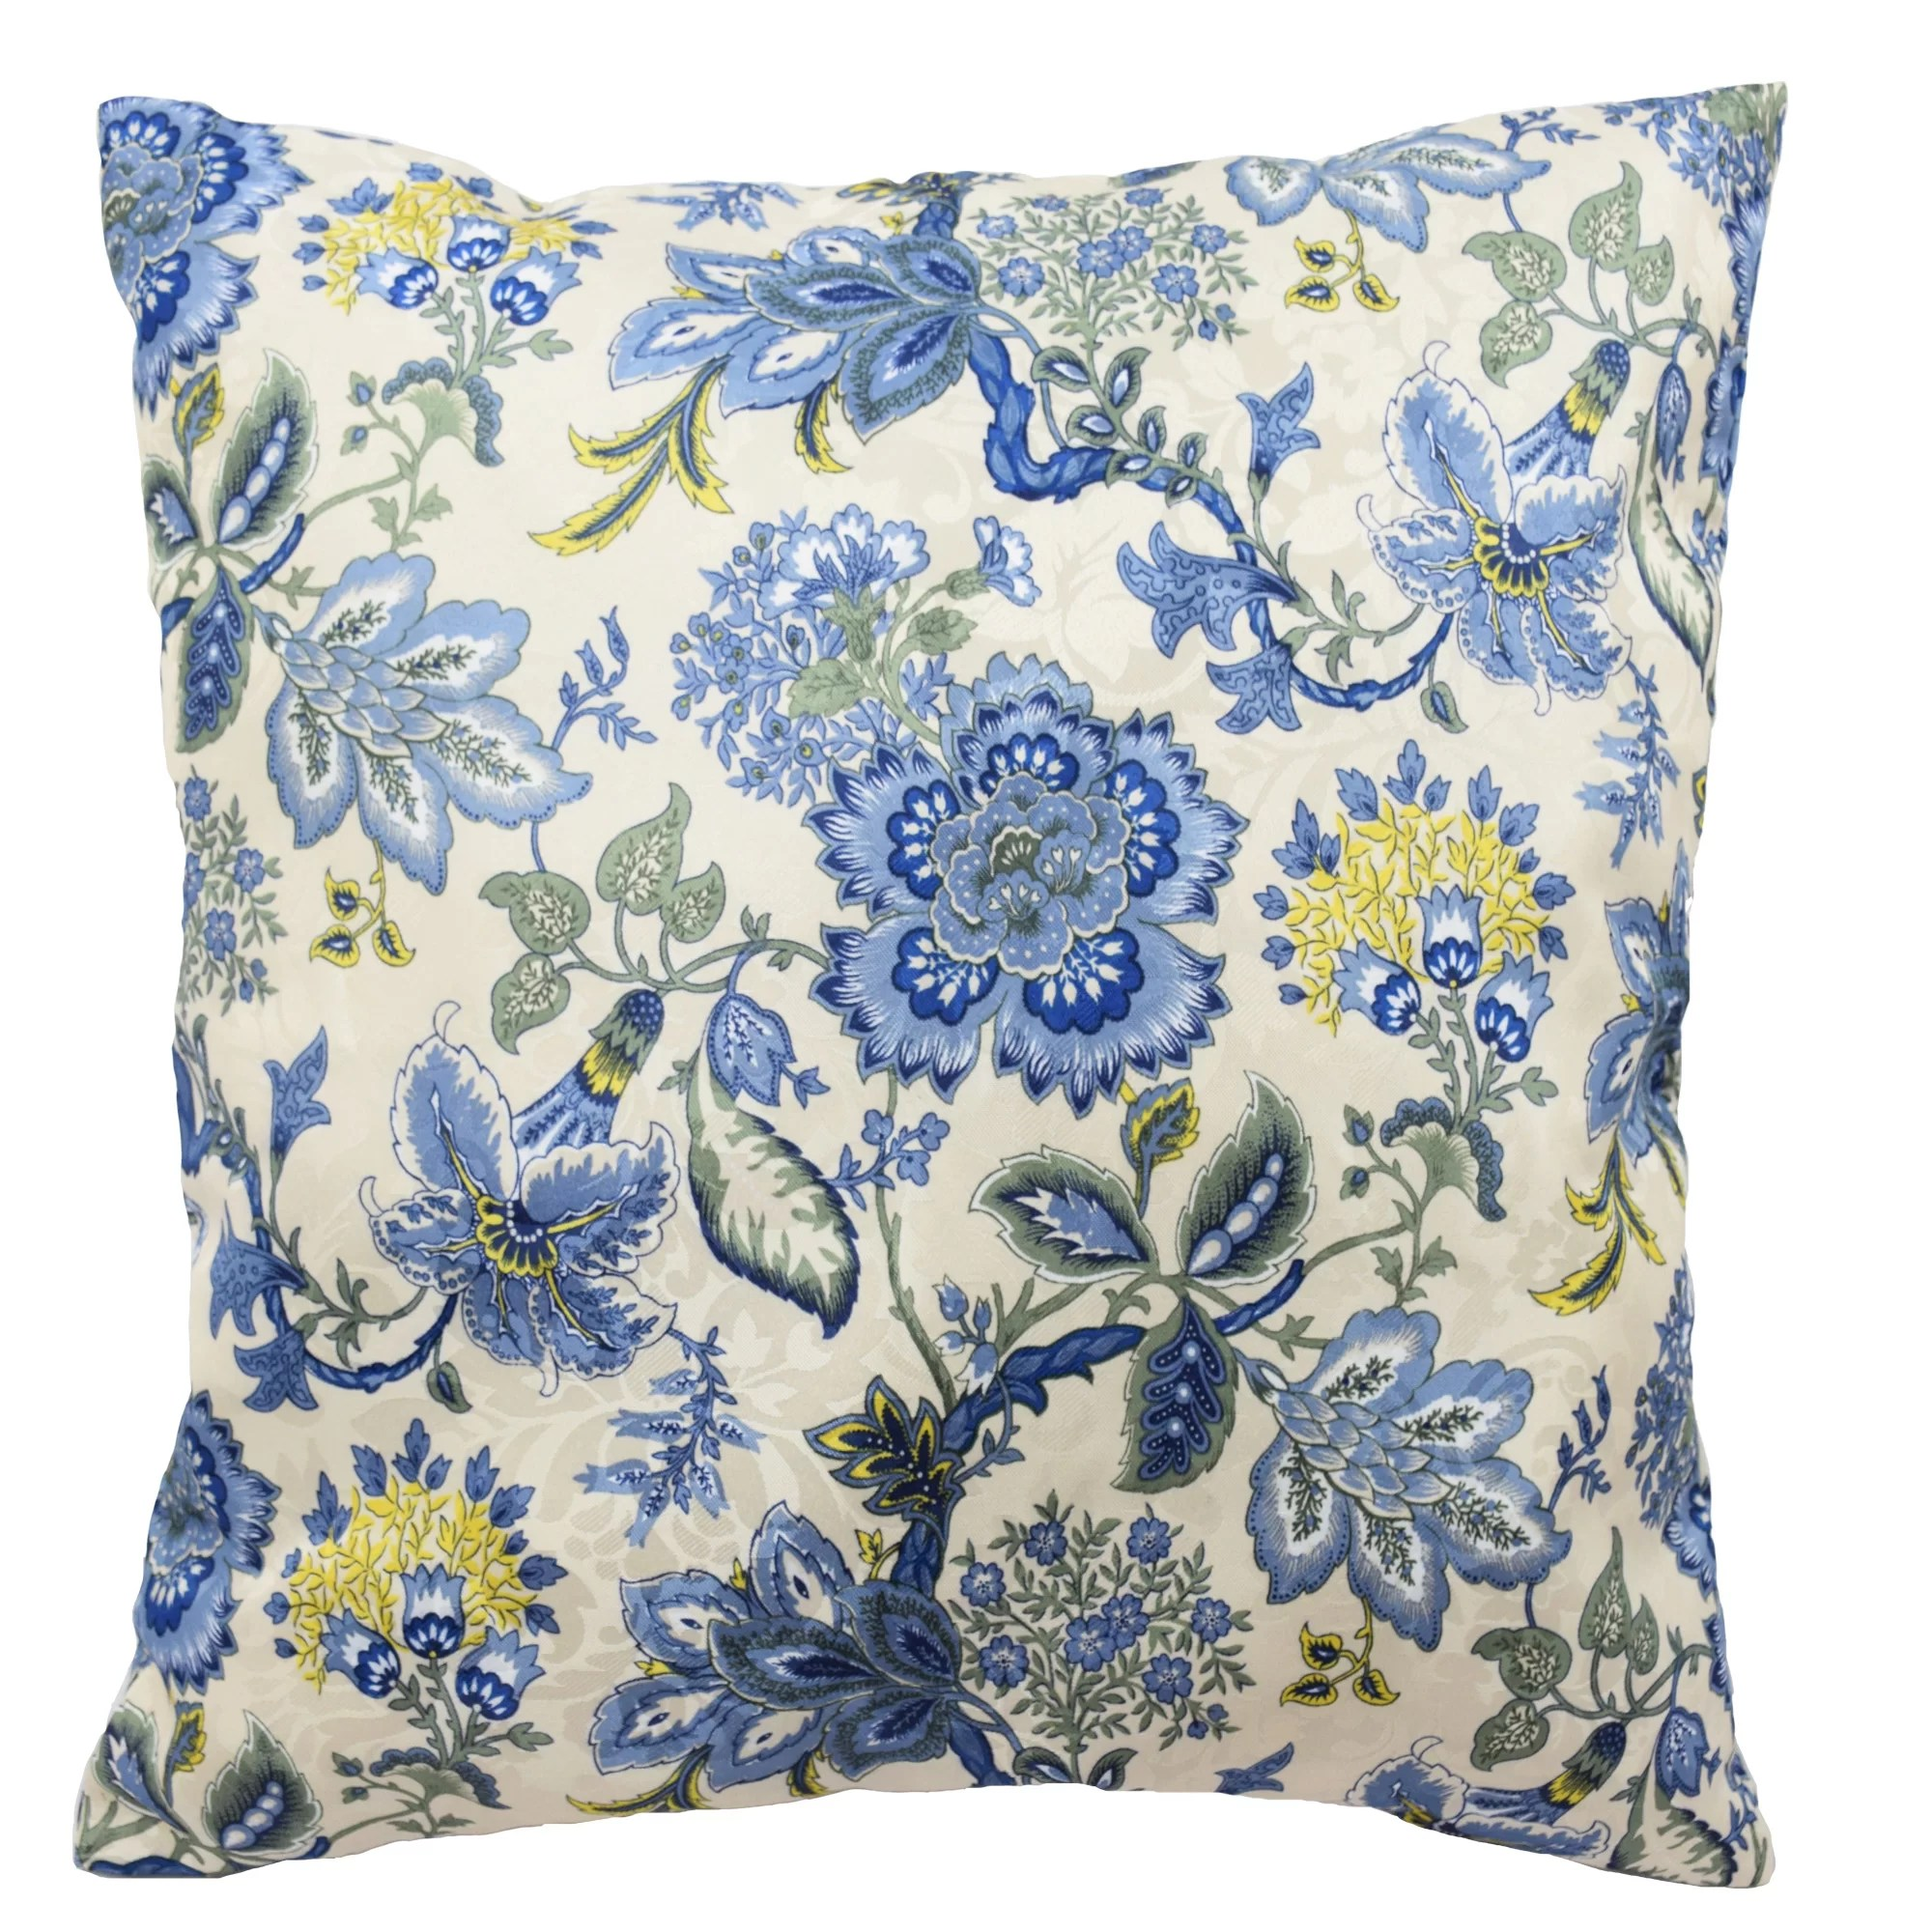 Traditions by Waverly Navarra Floral Decorative Throw